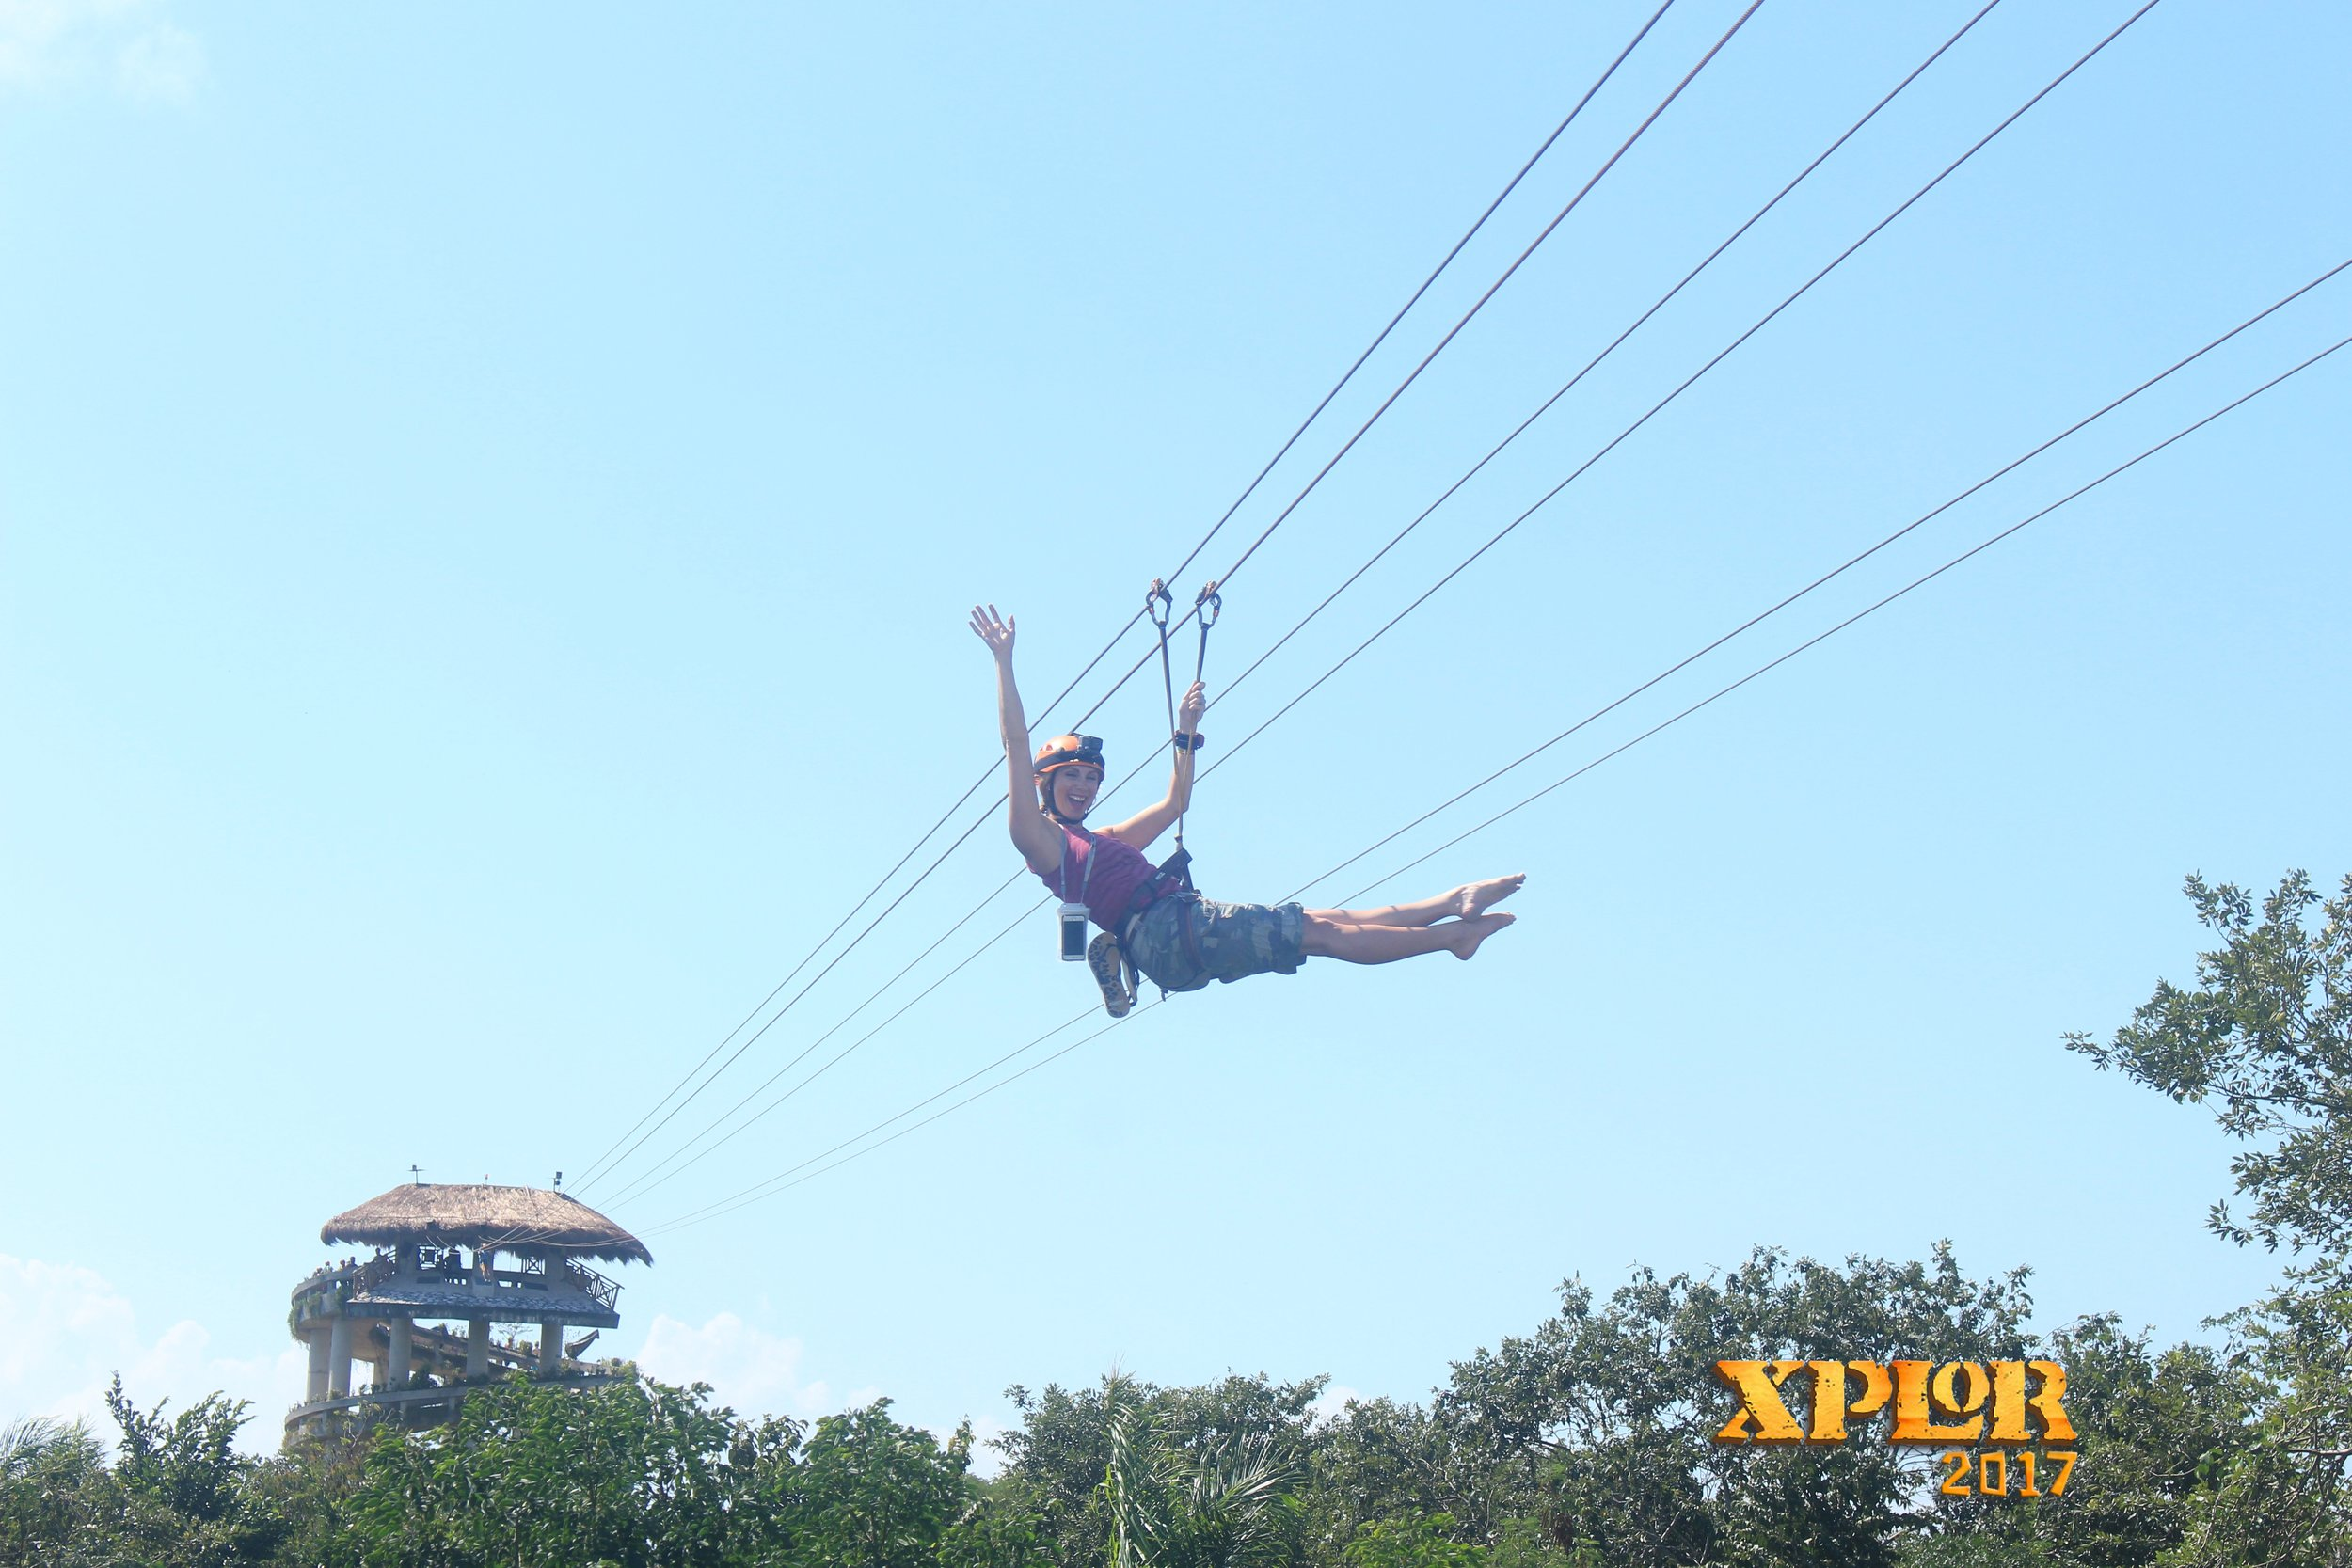 xplor park review, xplor cancun mexico